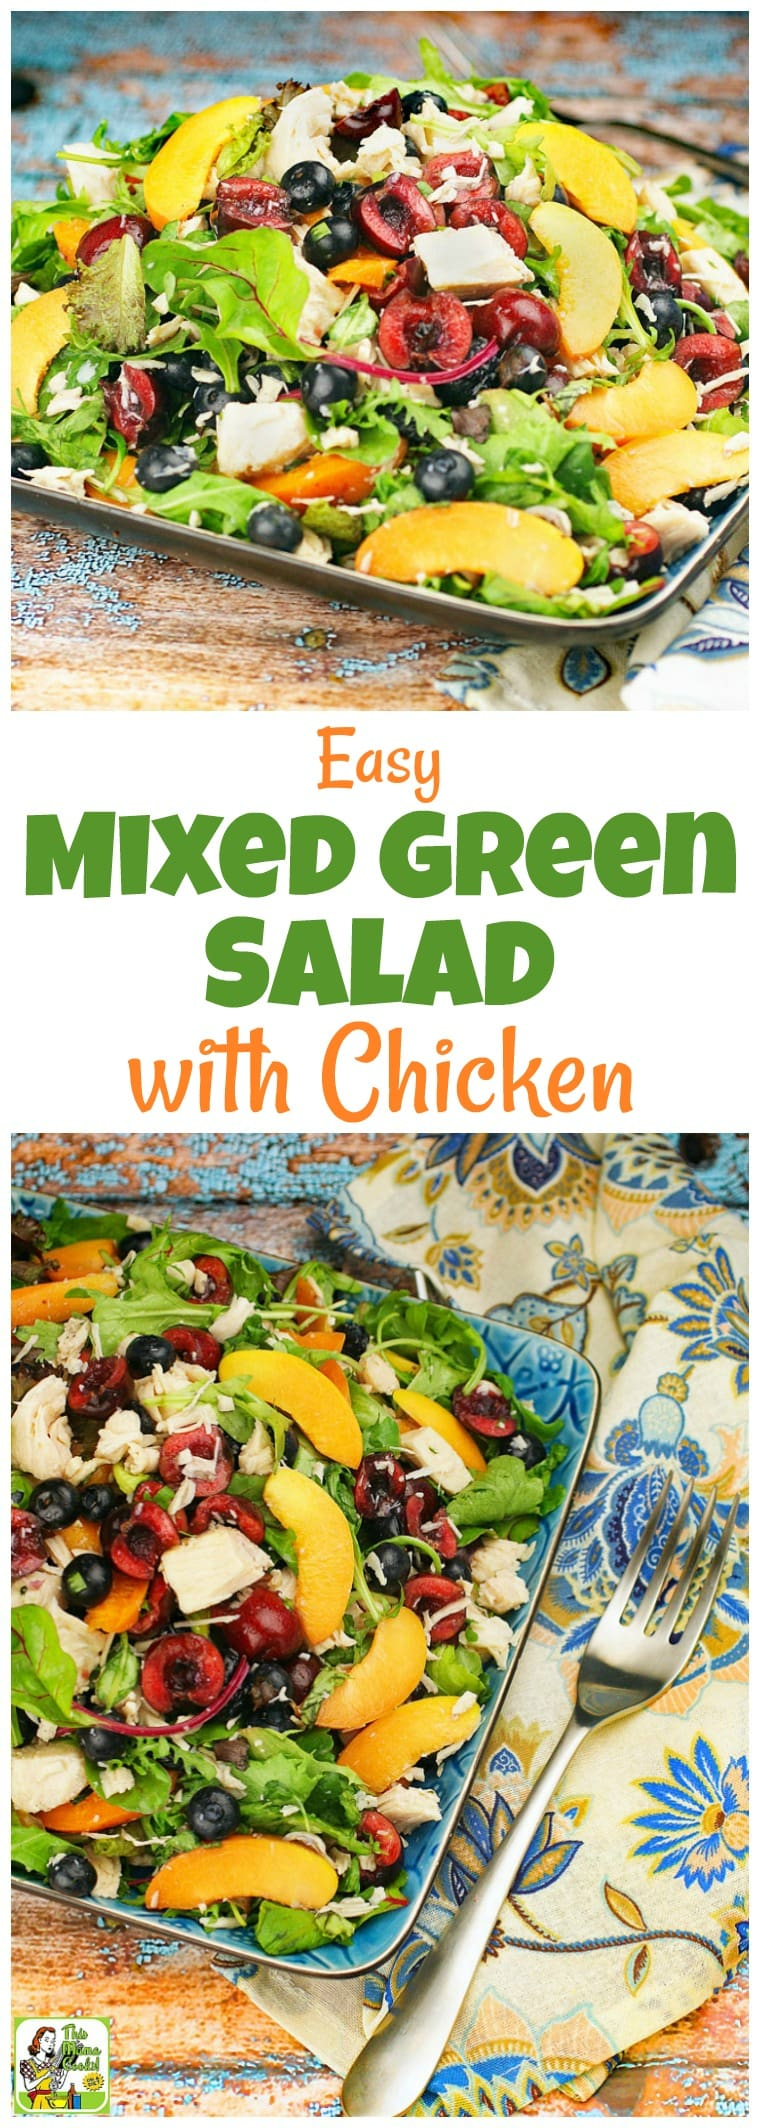 Too hot to cook? This Easy Mixed Green Salad with Chicken recipe makes a satisfying weeknight meal. There's no cooking since it uses canned chicken breast. Click to get this healthy mixed green salad with chicken recipe that takes under 20 minutes to make, is easy to prepare, and uses seasonal fruits, too. #chicken #salad #easy #recipe #chicken #healthyrecipe #chickensalad #salad #glutenfree #dinner #healthyrecipes #recipeoftheday #easydinner #nocook #chickenrecipe